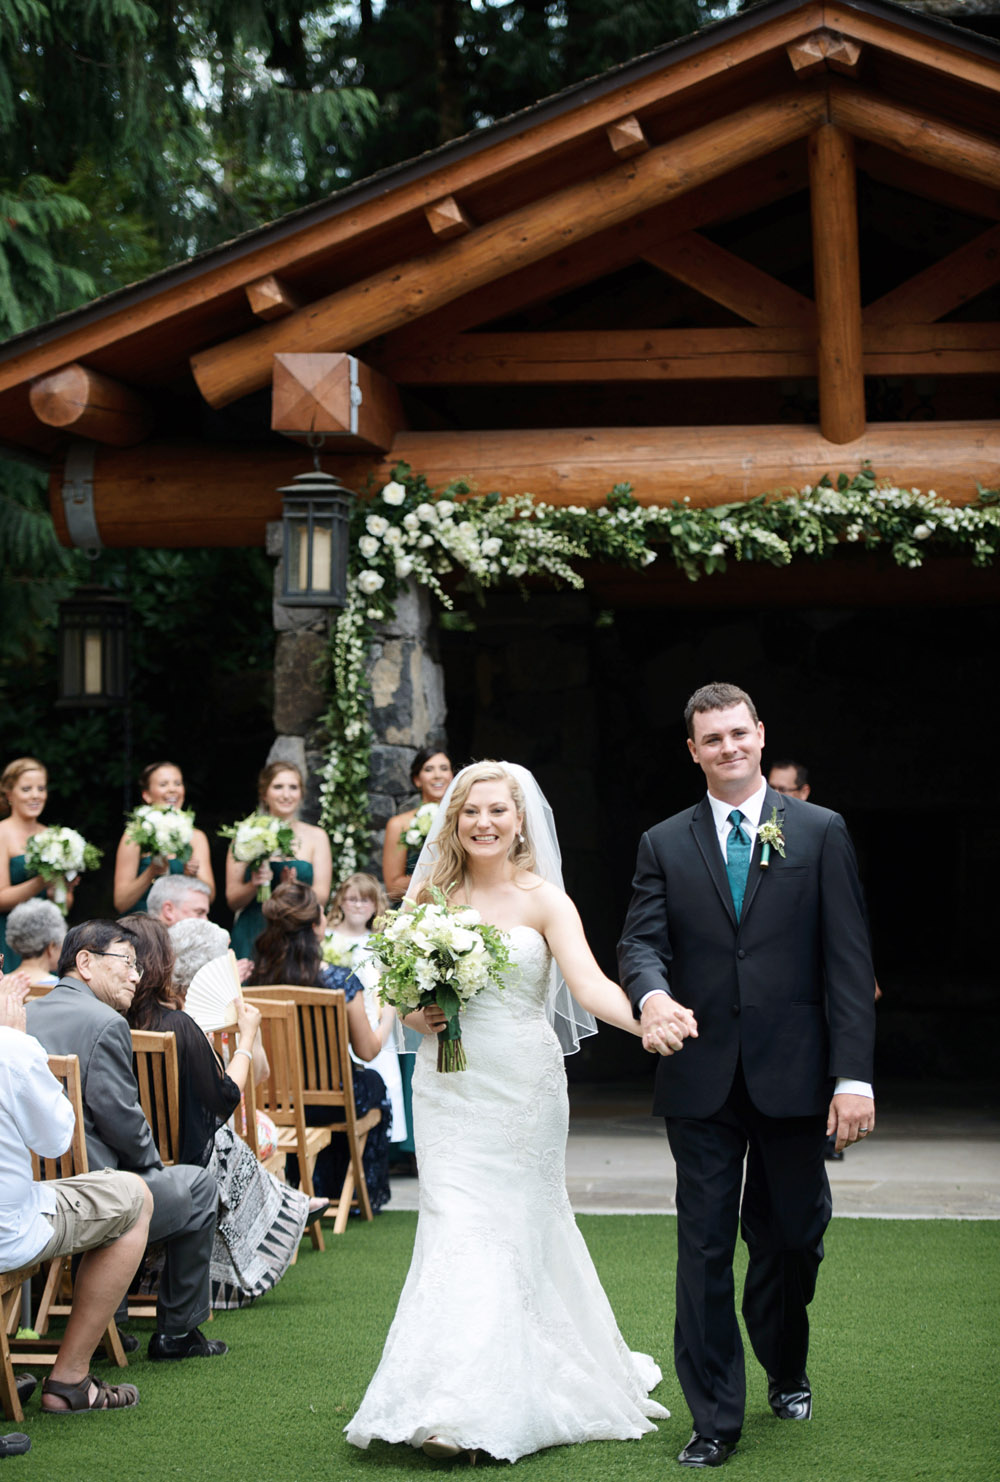 Bridalbliss.com | Washington Wedding| Seattle Event Planning and Design | Deyla Huss Photography | Bella Bloom Florals